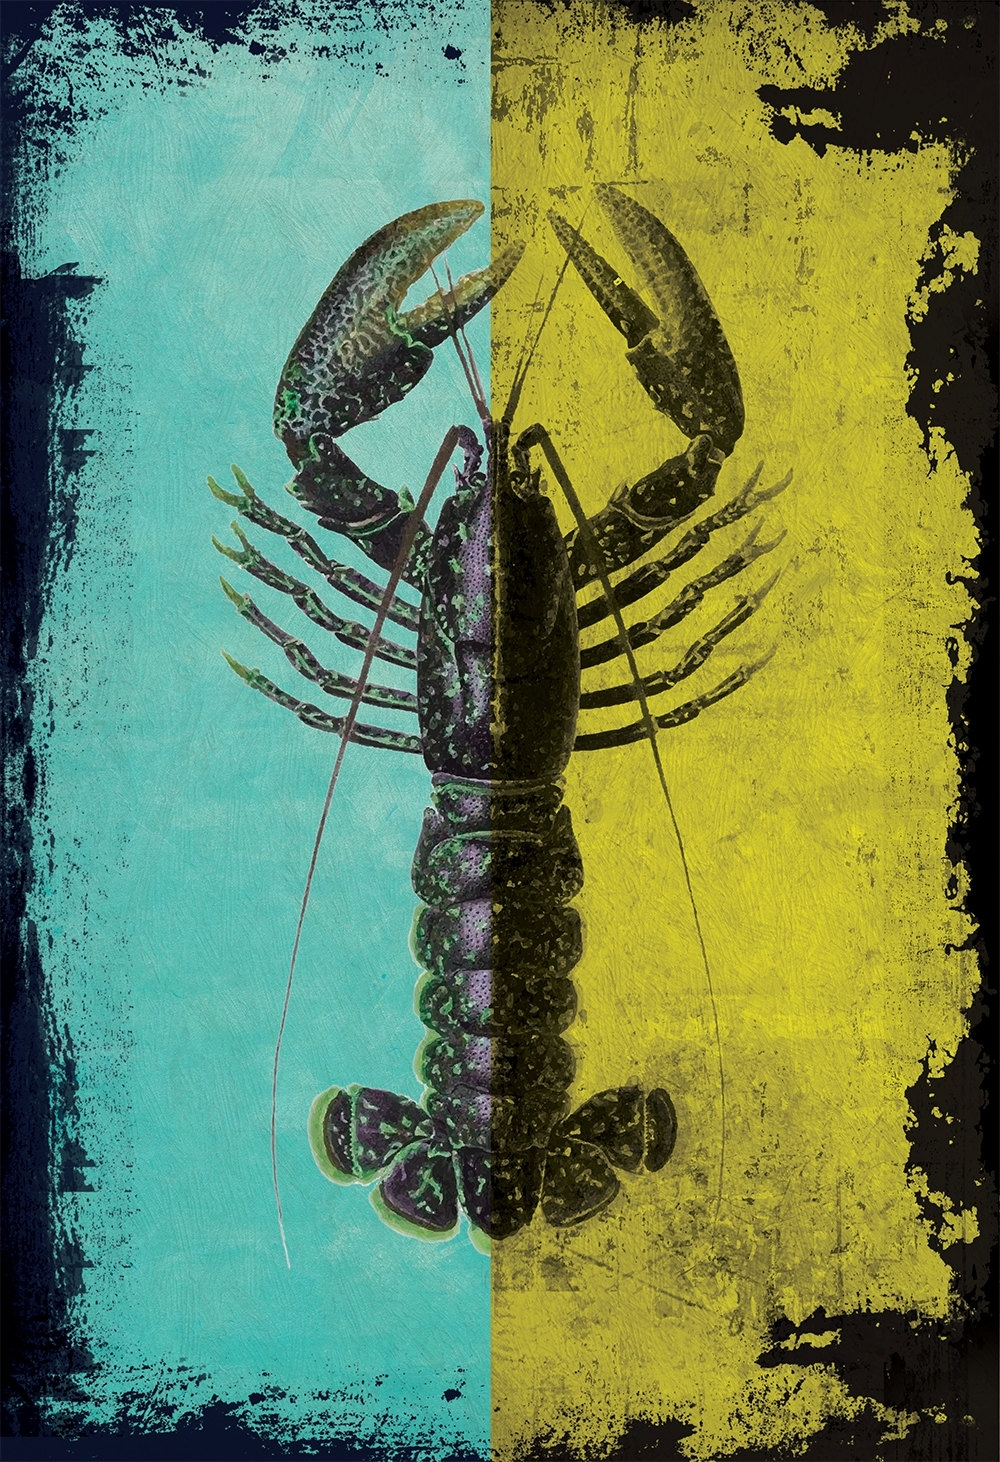 Lobster Print Vintage Nautical Decor Ocean Wall Art – Giclee Print Inside Most Popular Ocean Wall Art (View 12 of 20)